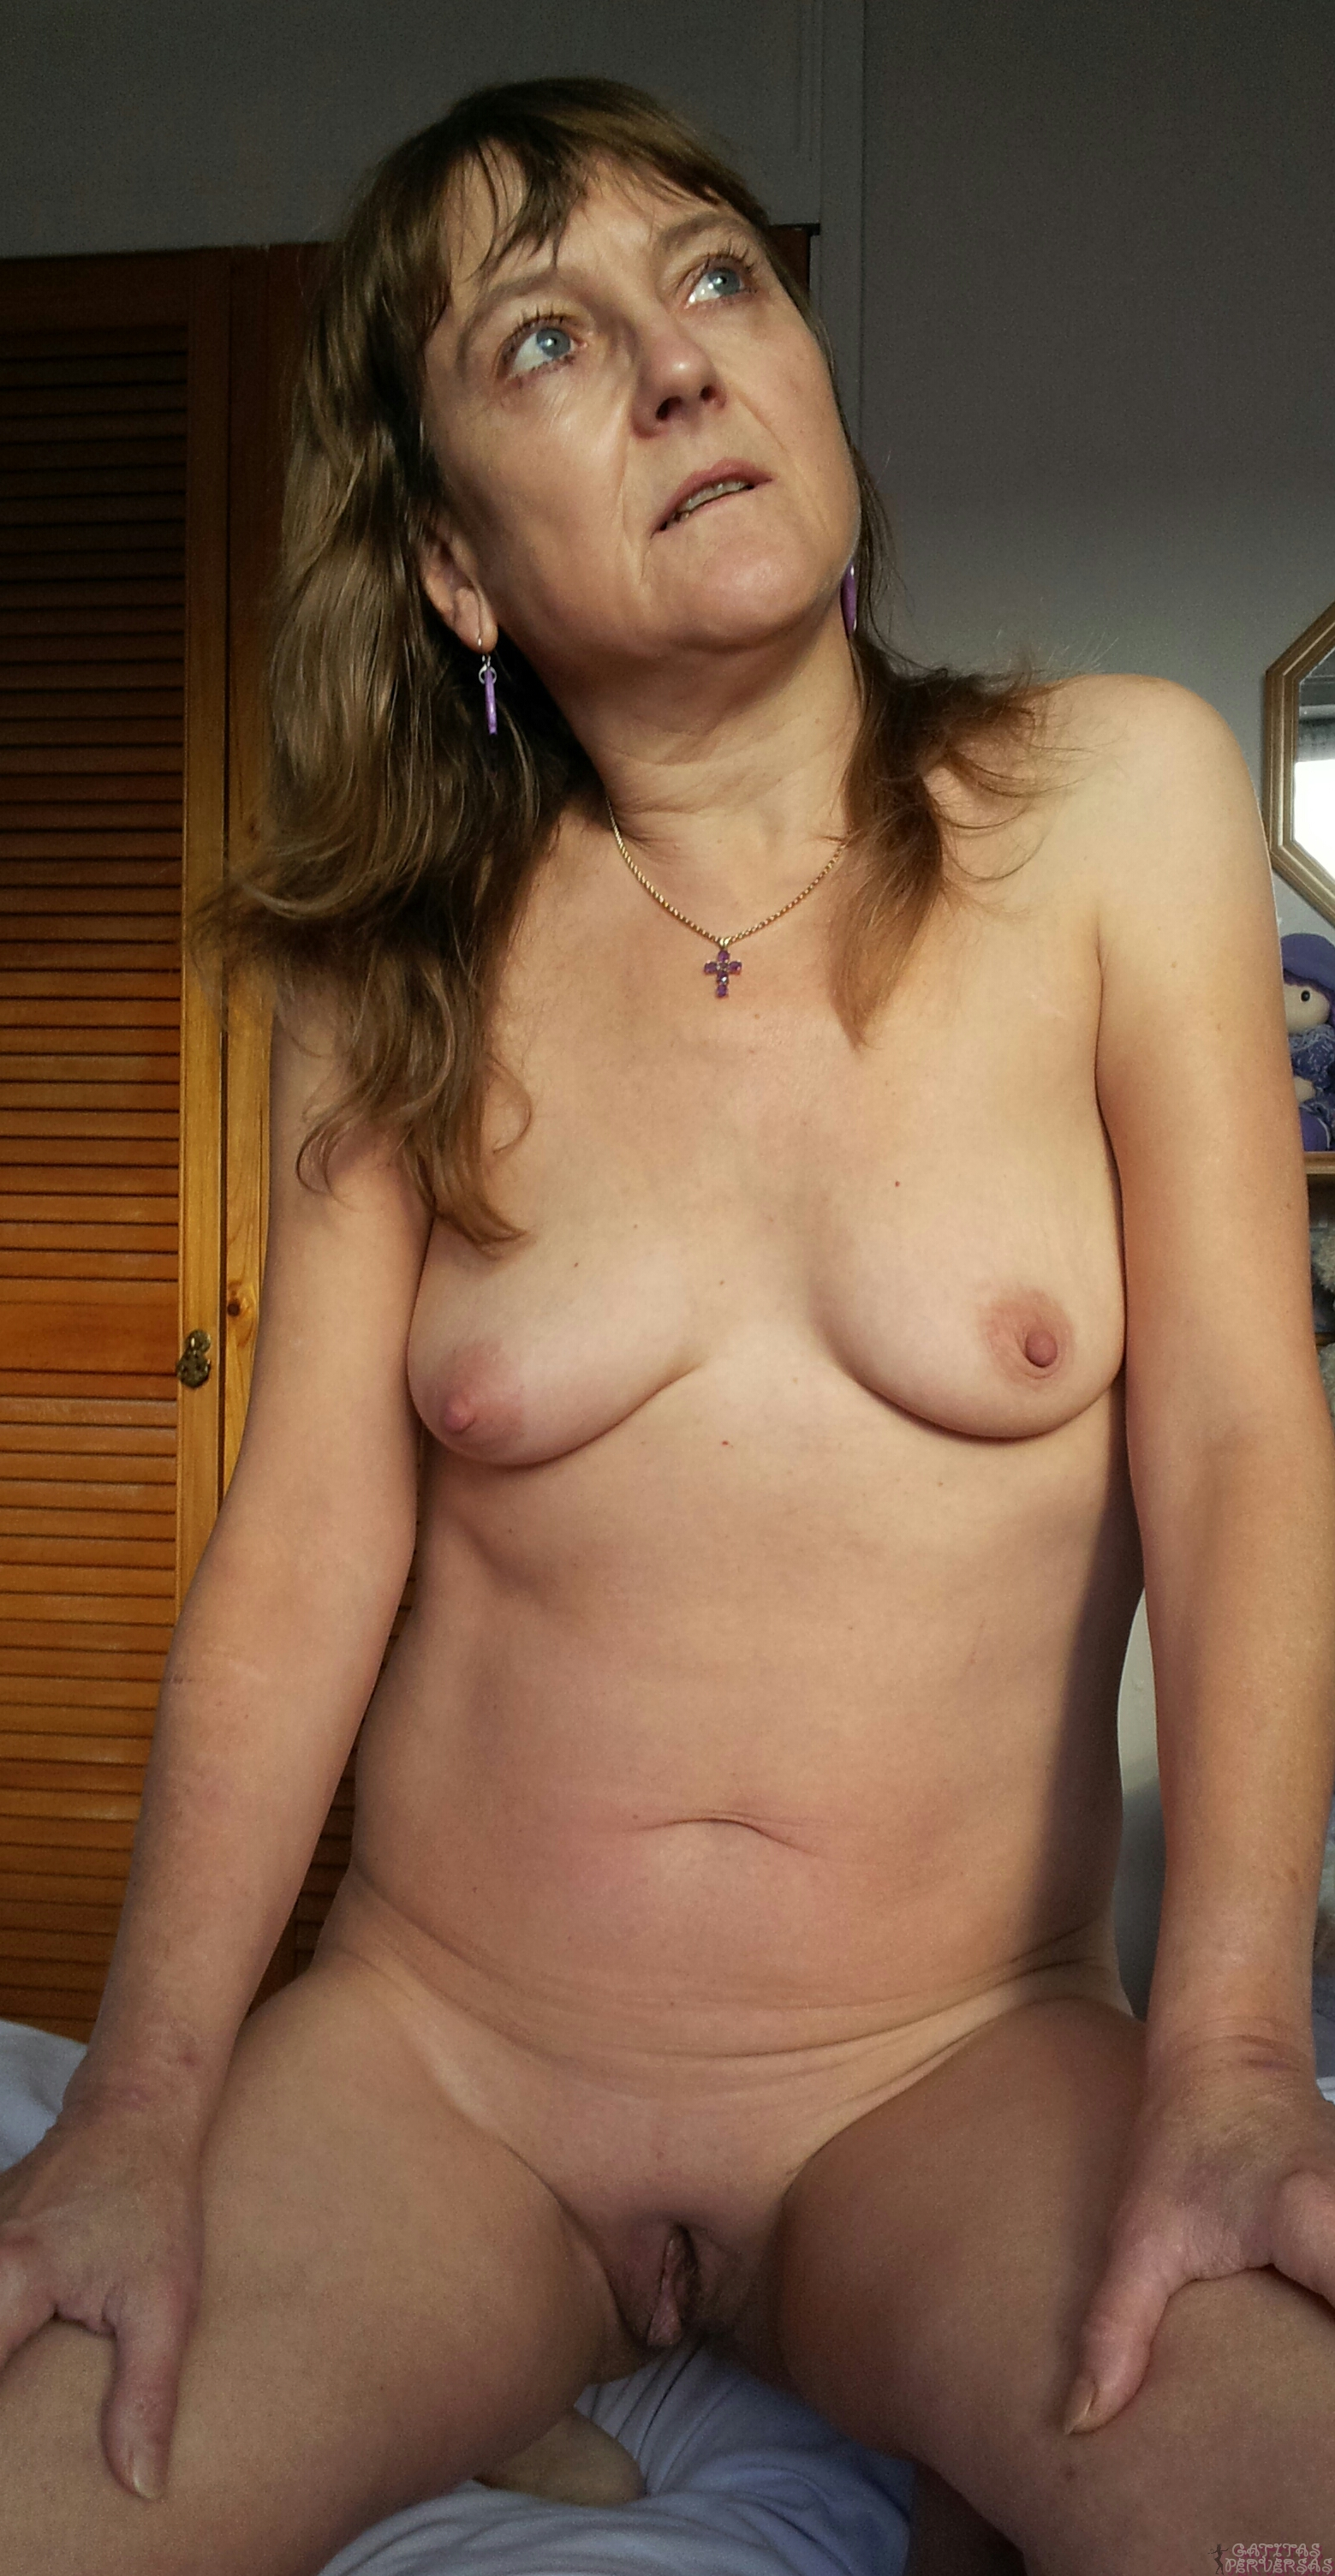 18 year old linda thoren nailed by randy west aged 48 6